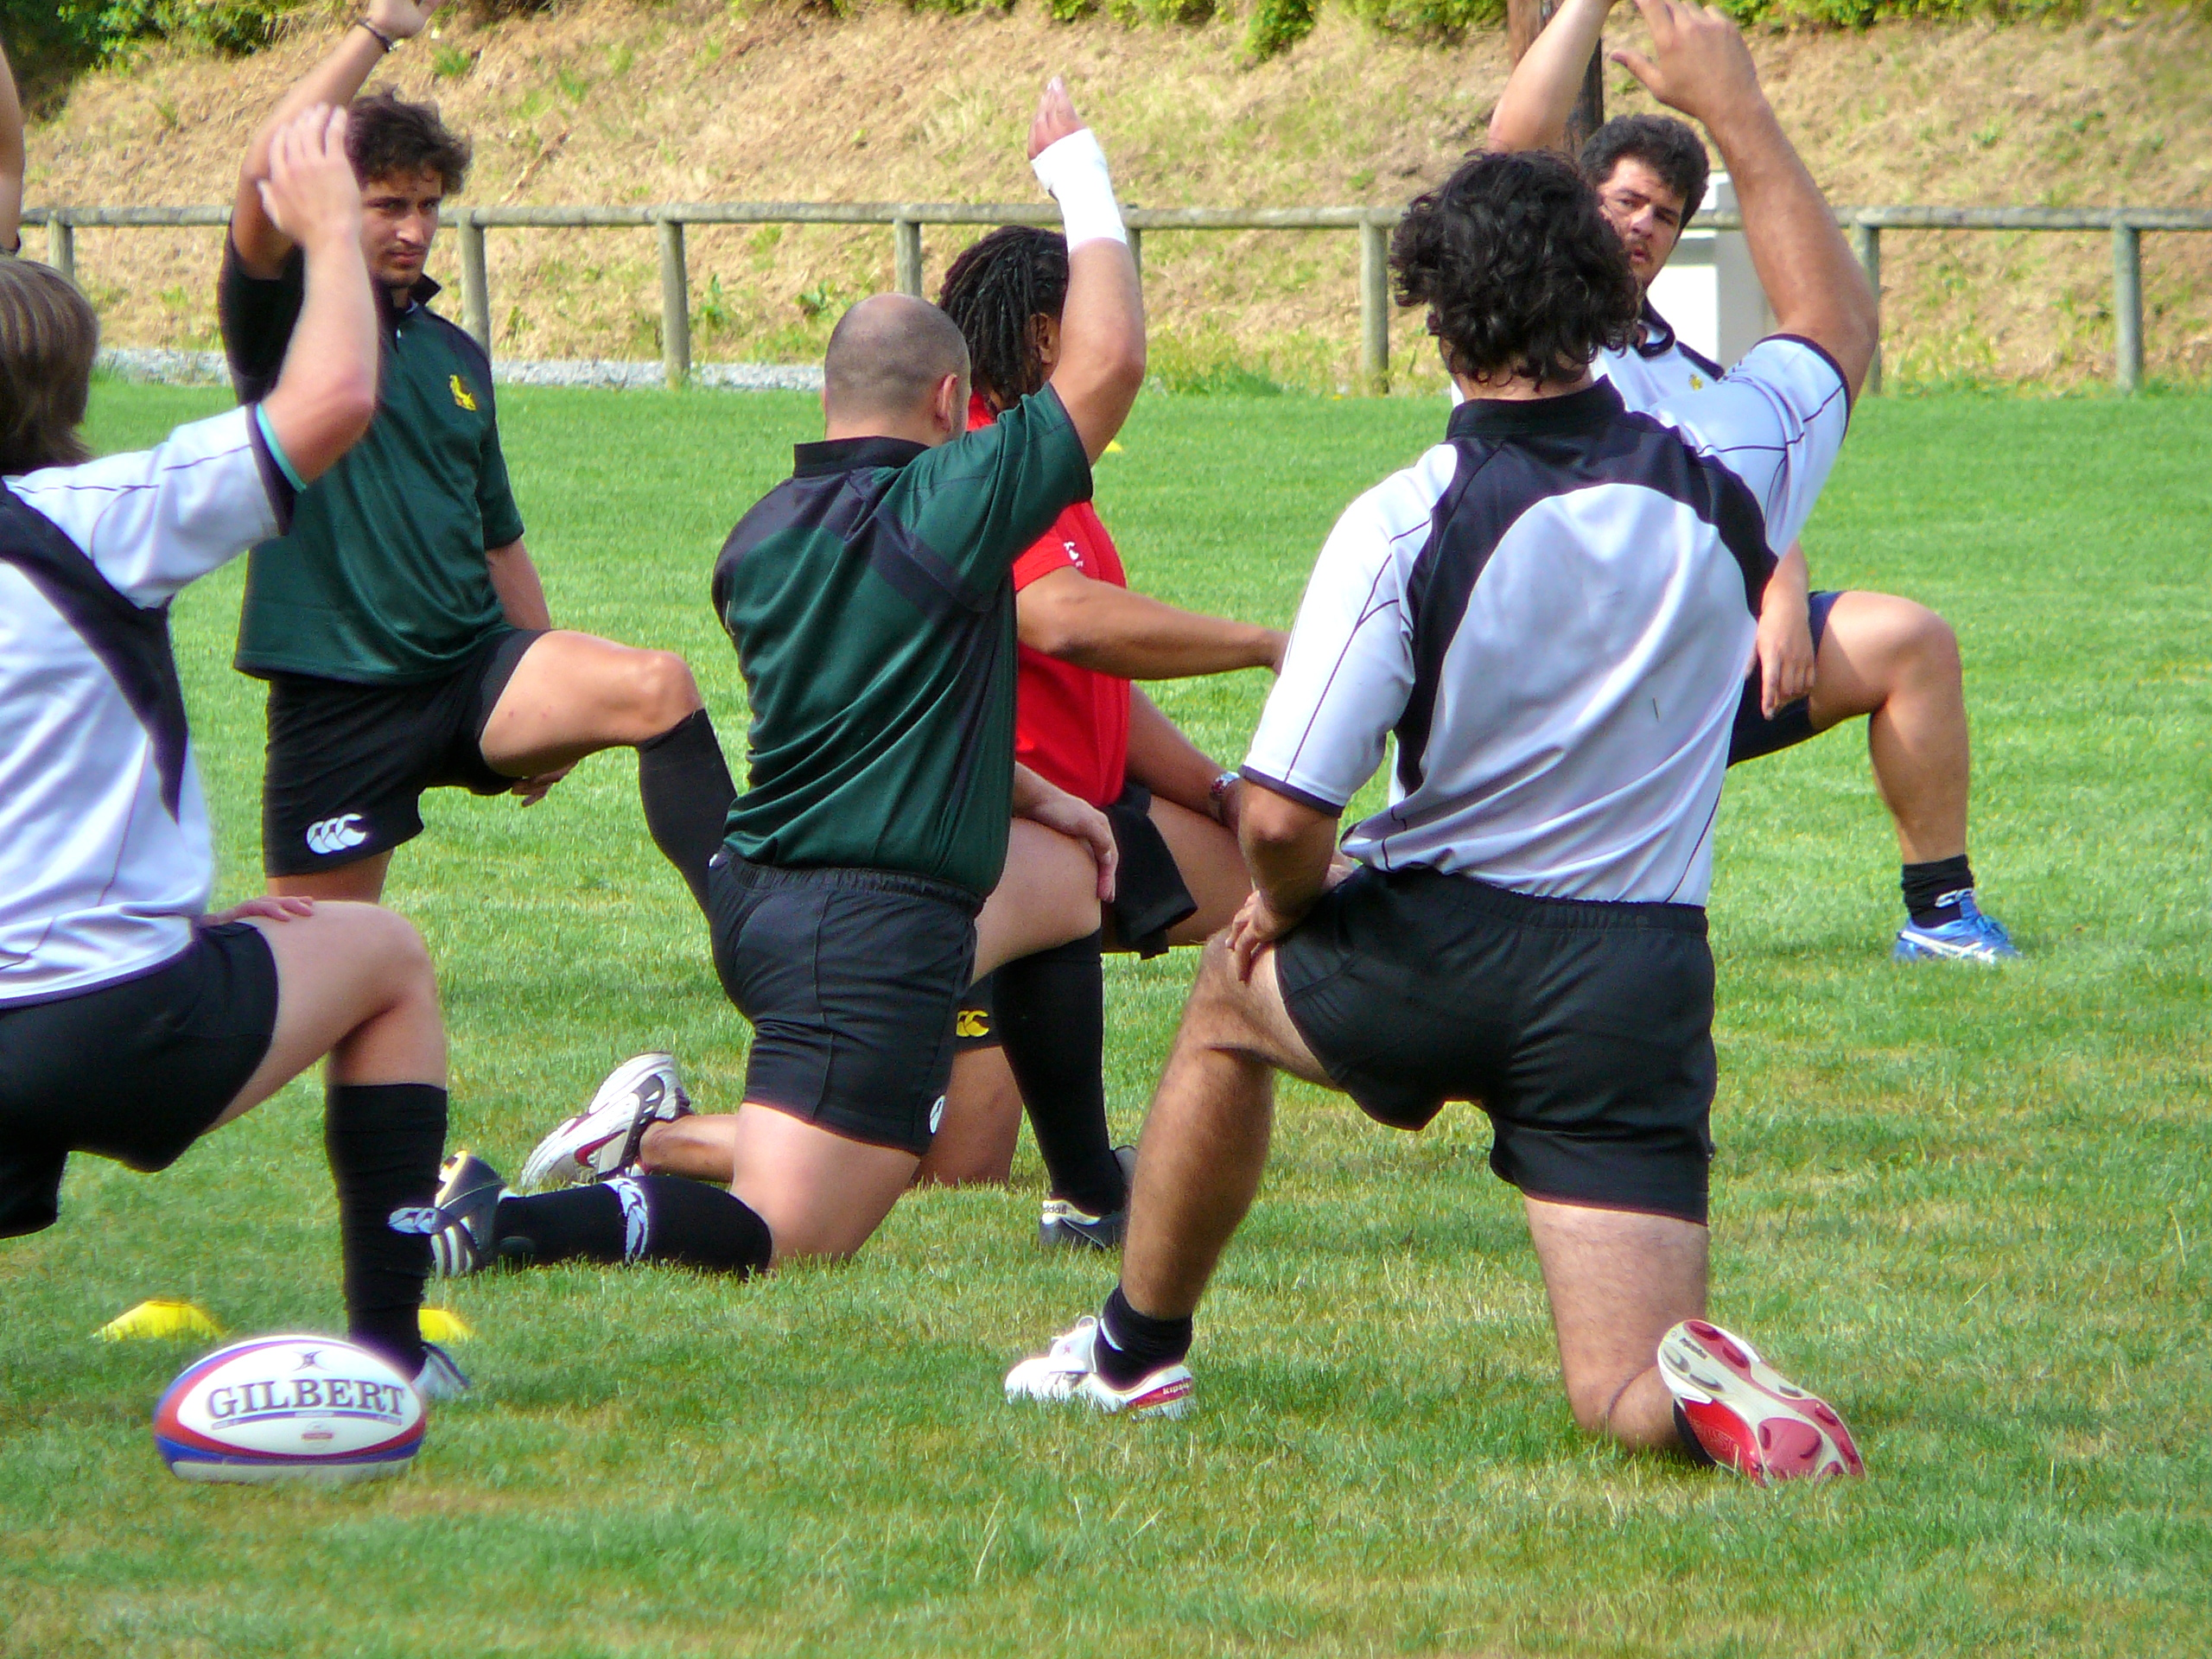 Adults Rugby Club Training Camp